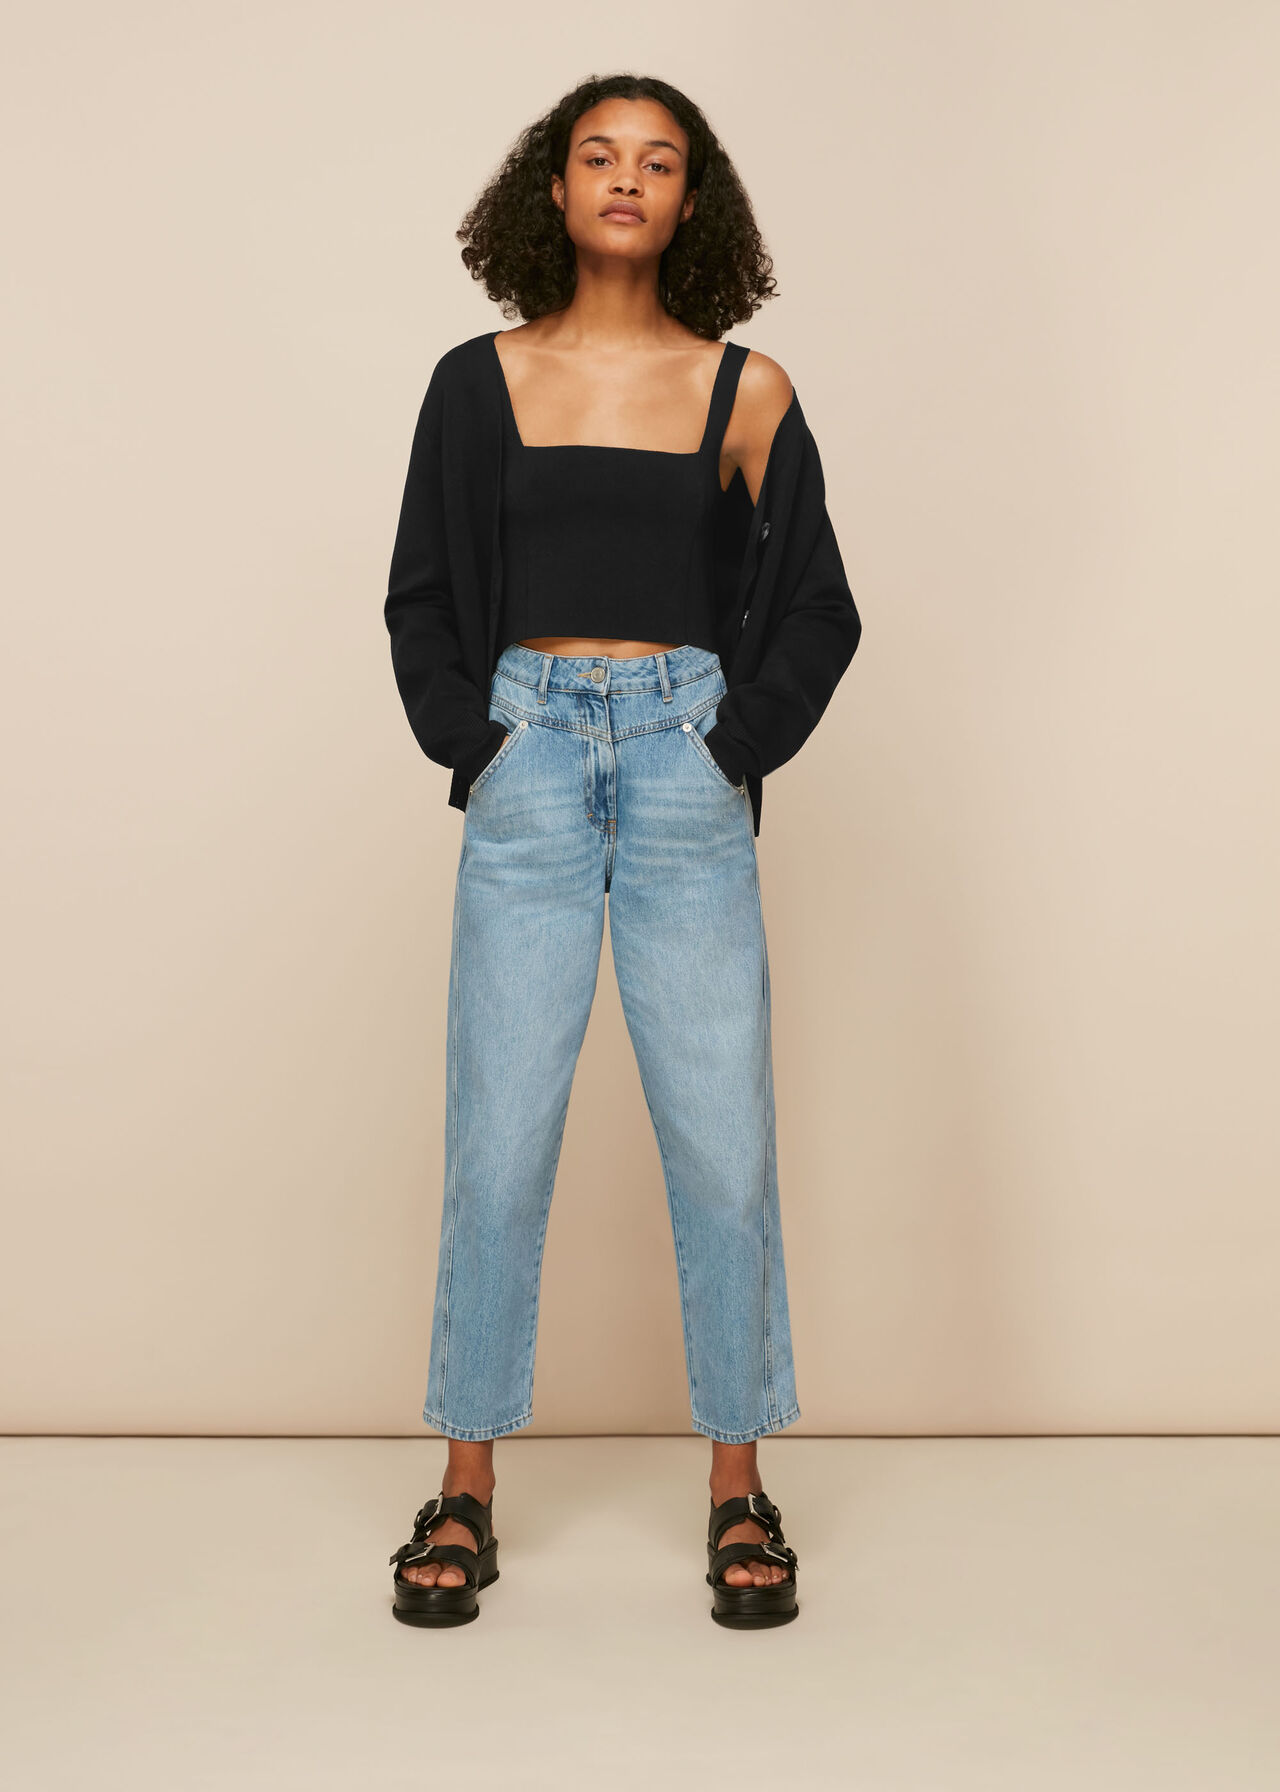 Square Neck Knit Crop Top